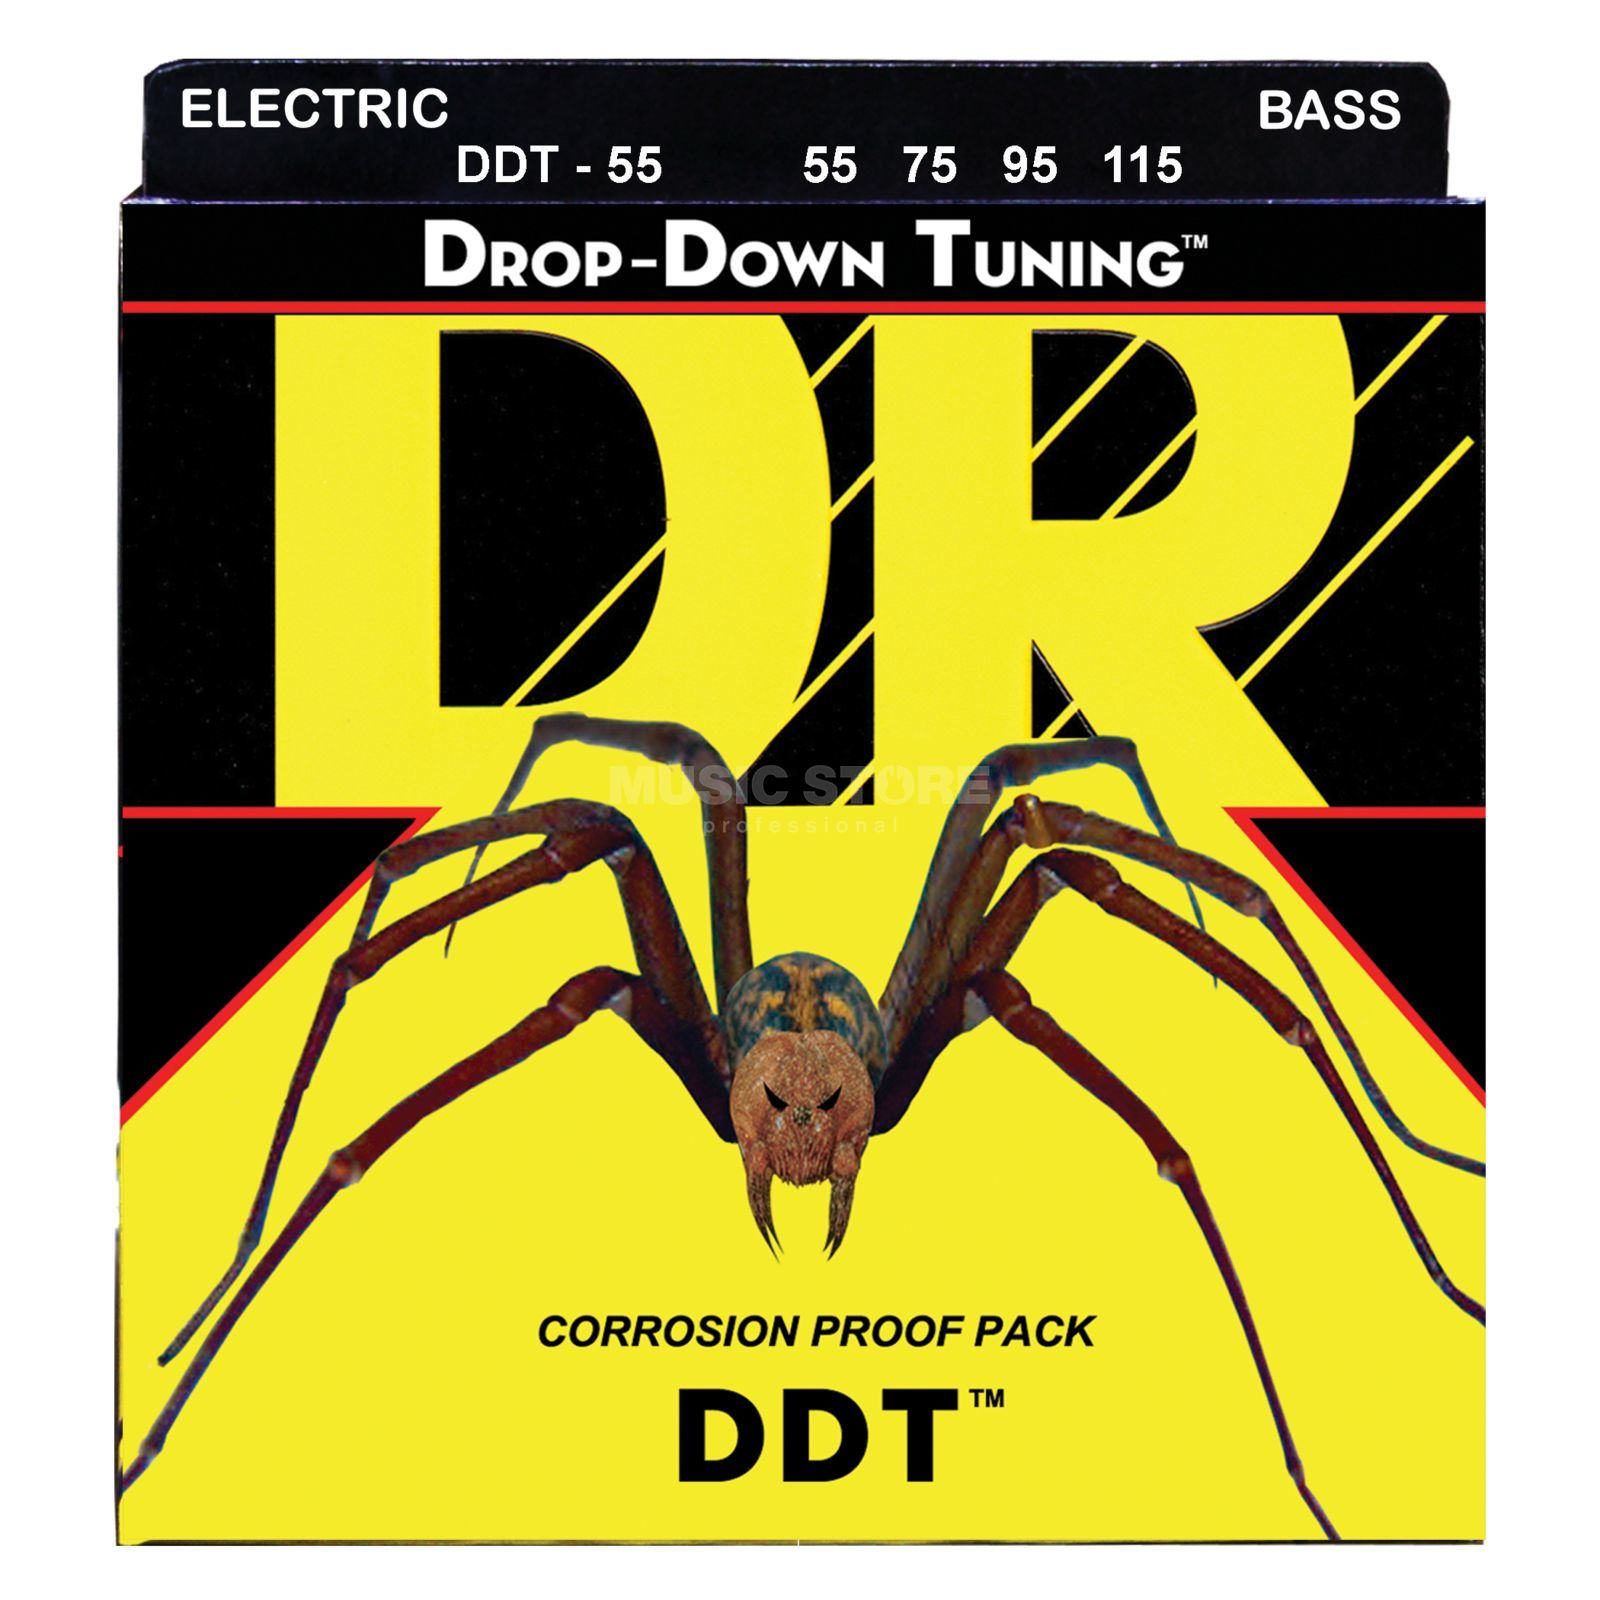 DR 4 Bass Strings 55-115 Drop-Down Tuning DDT-55 Изображение товара